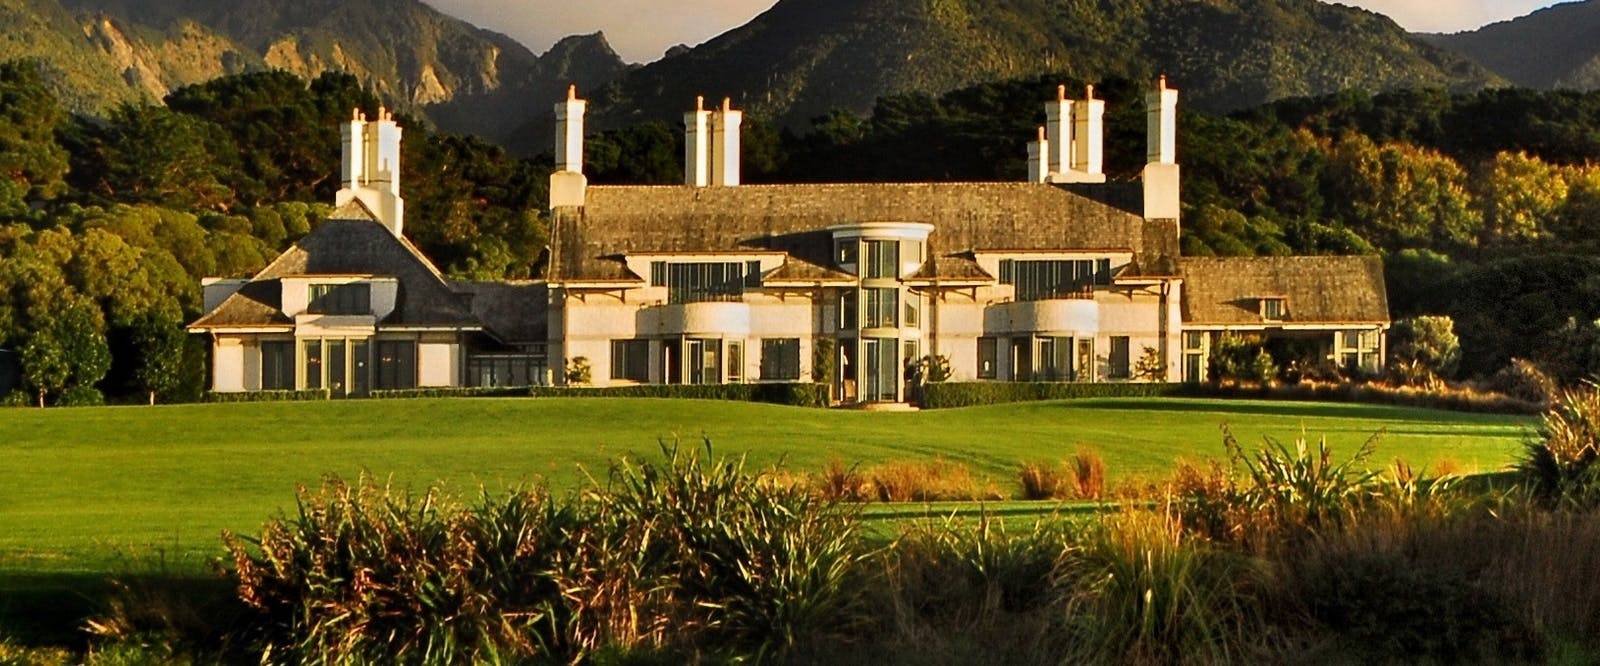 Wharekauhau Country Estate, Palliser Bay